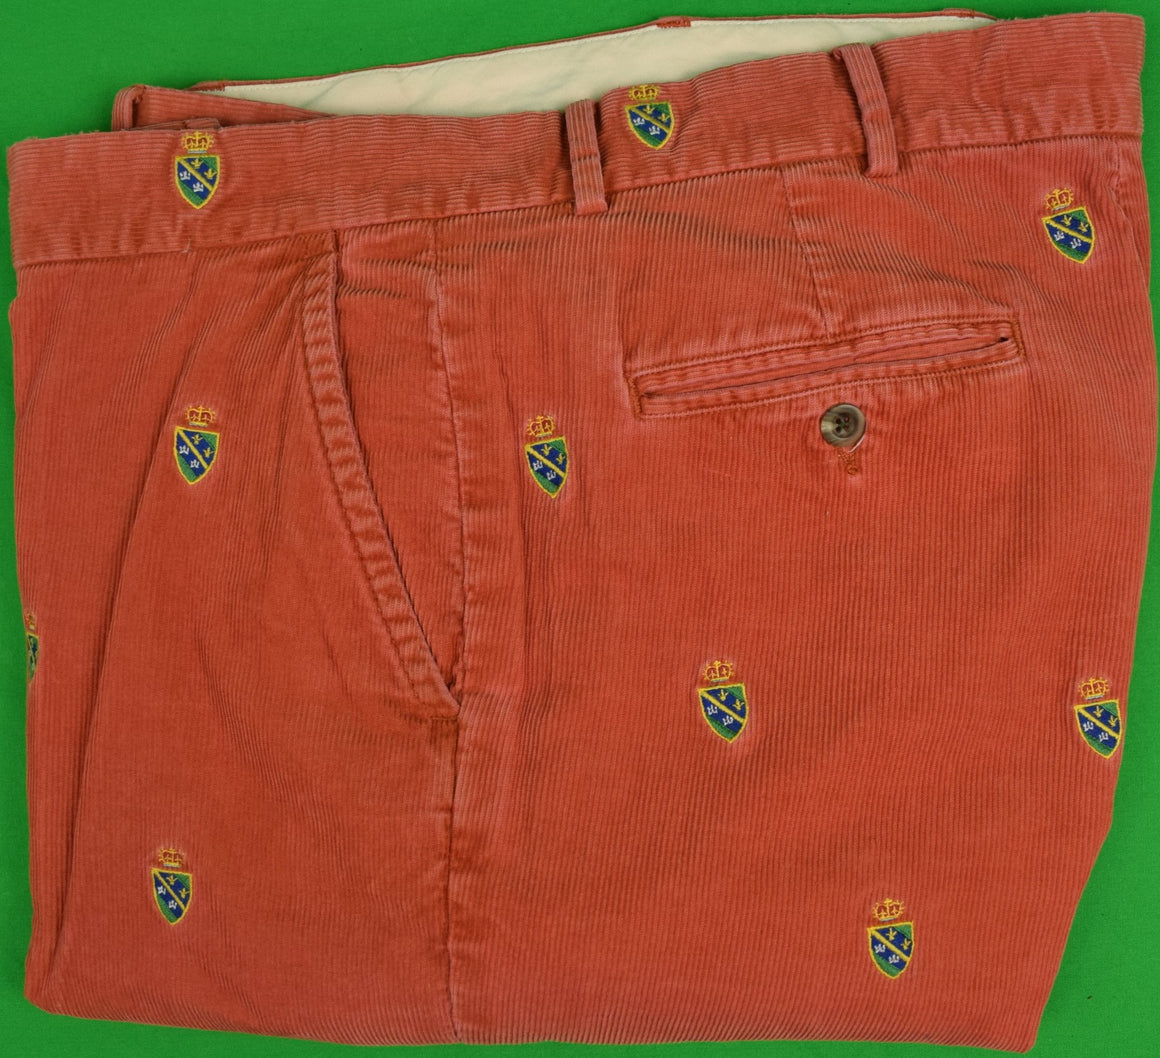 "Rugby Ralph Lauren Coral Pinwale Cord Trousers w/ Heraldic Emblem Sz: 36"" (SOLD!)"